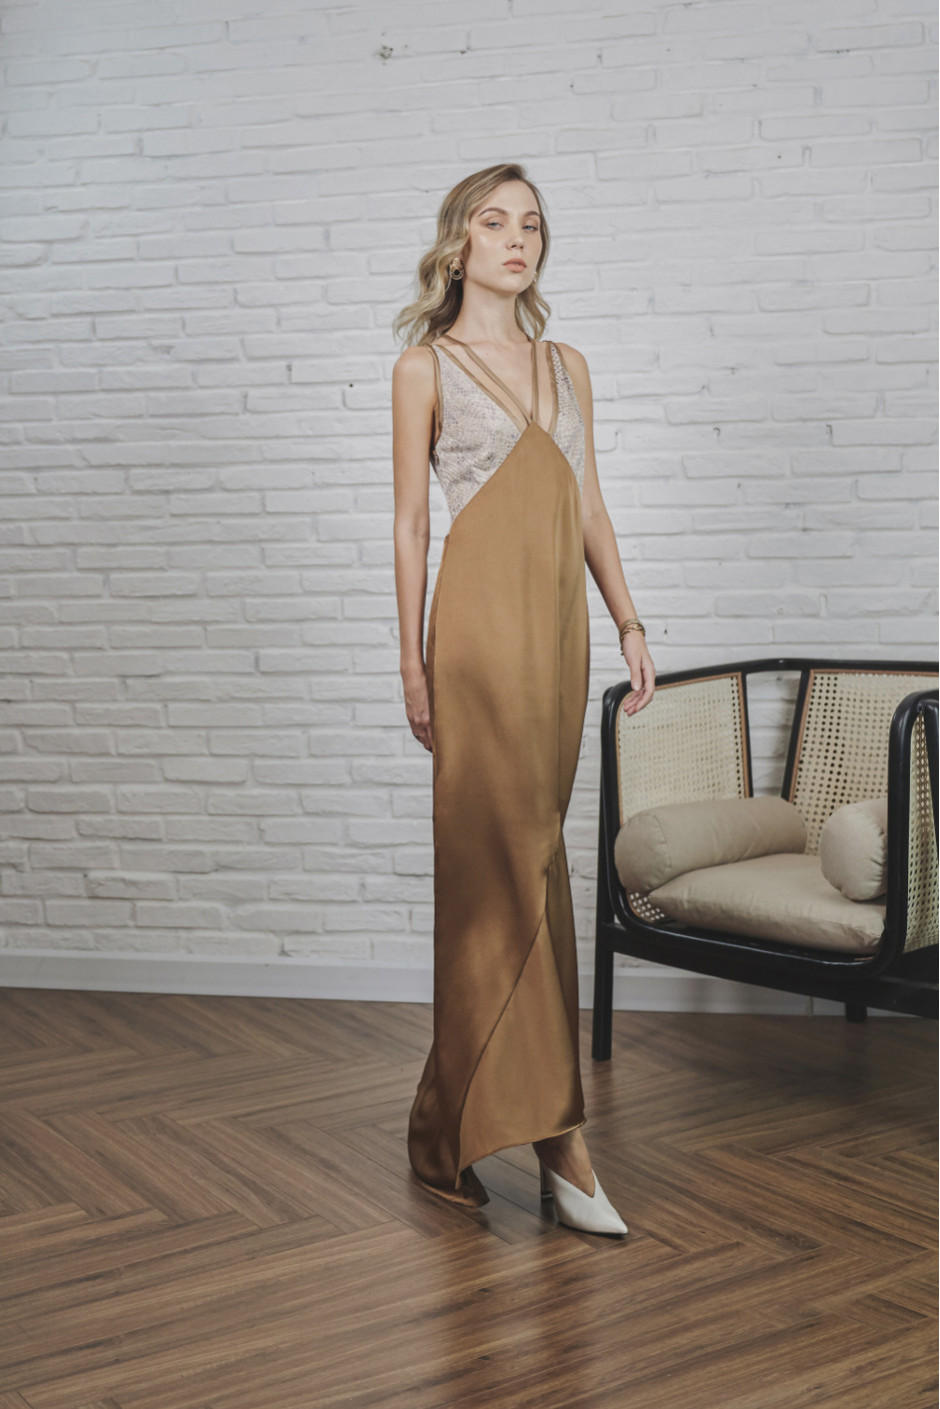 Golden Brown Angie Dress